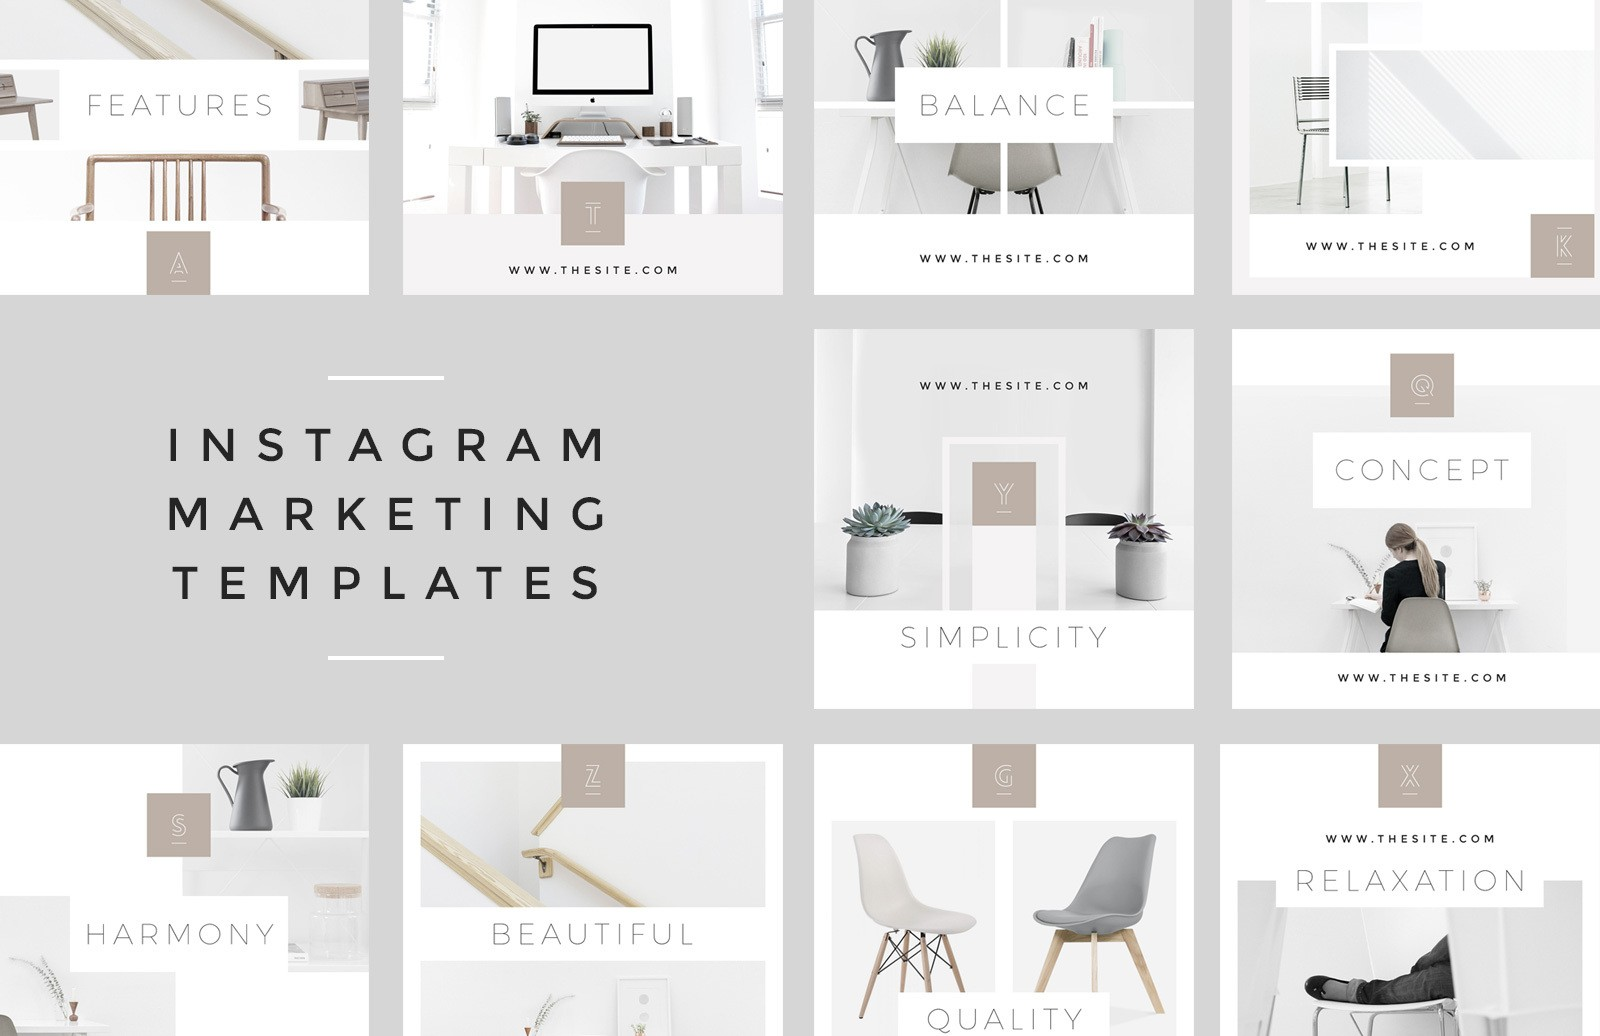 Instagram Marketing Templates Preview 1B